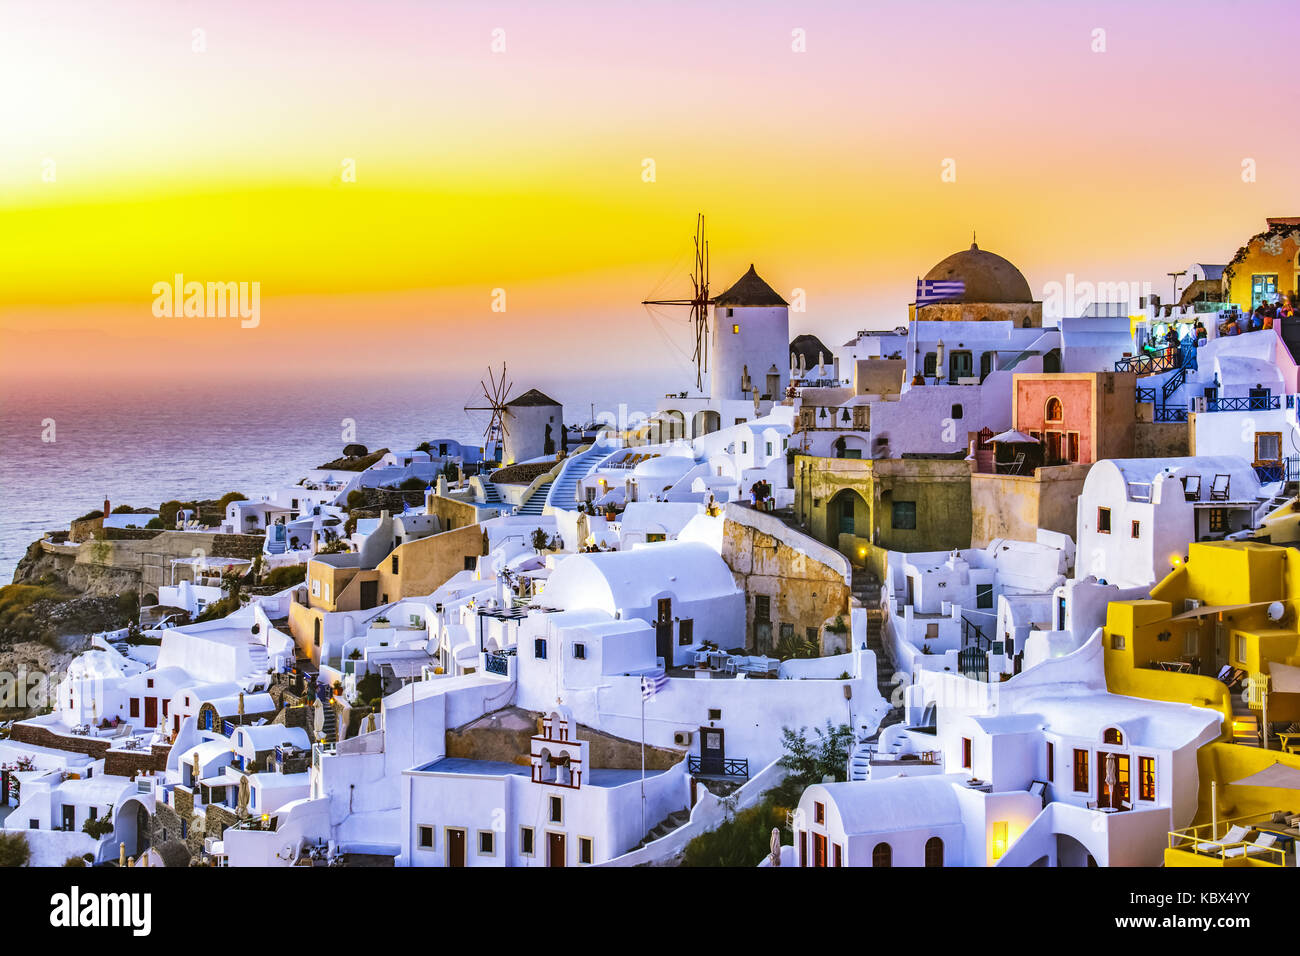 Sunset in Oia town, Santorini island, Greece. Traditional and famous white houses and churches  with blue domes - Stock Image